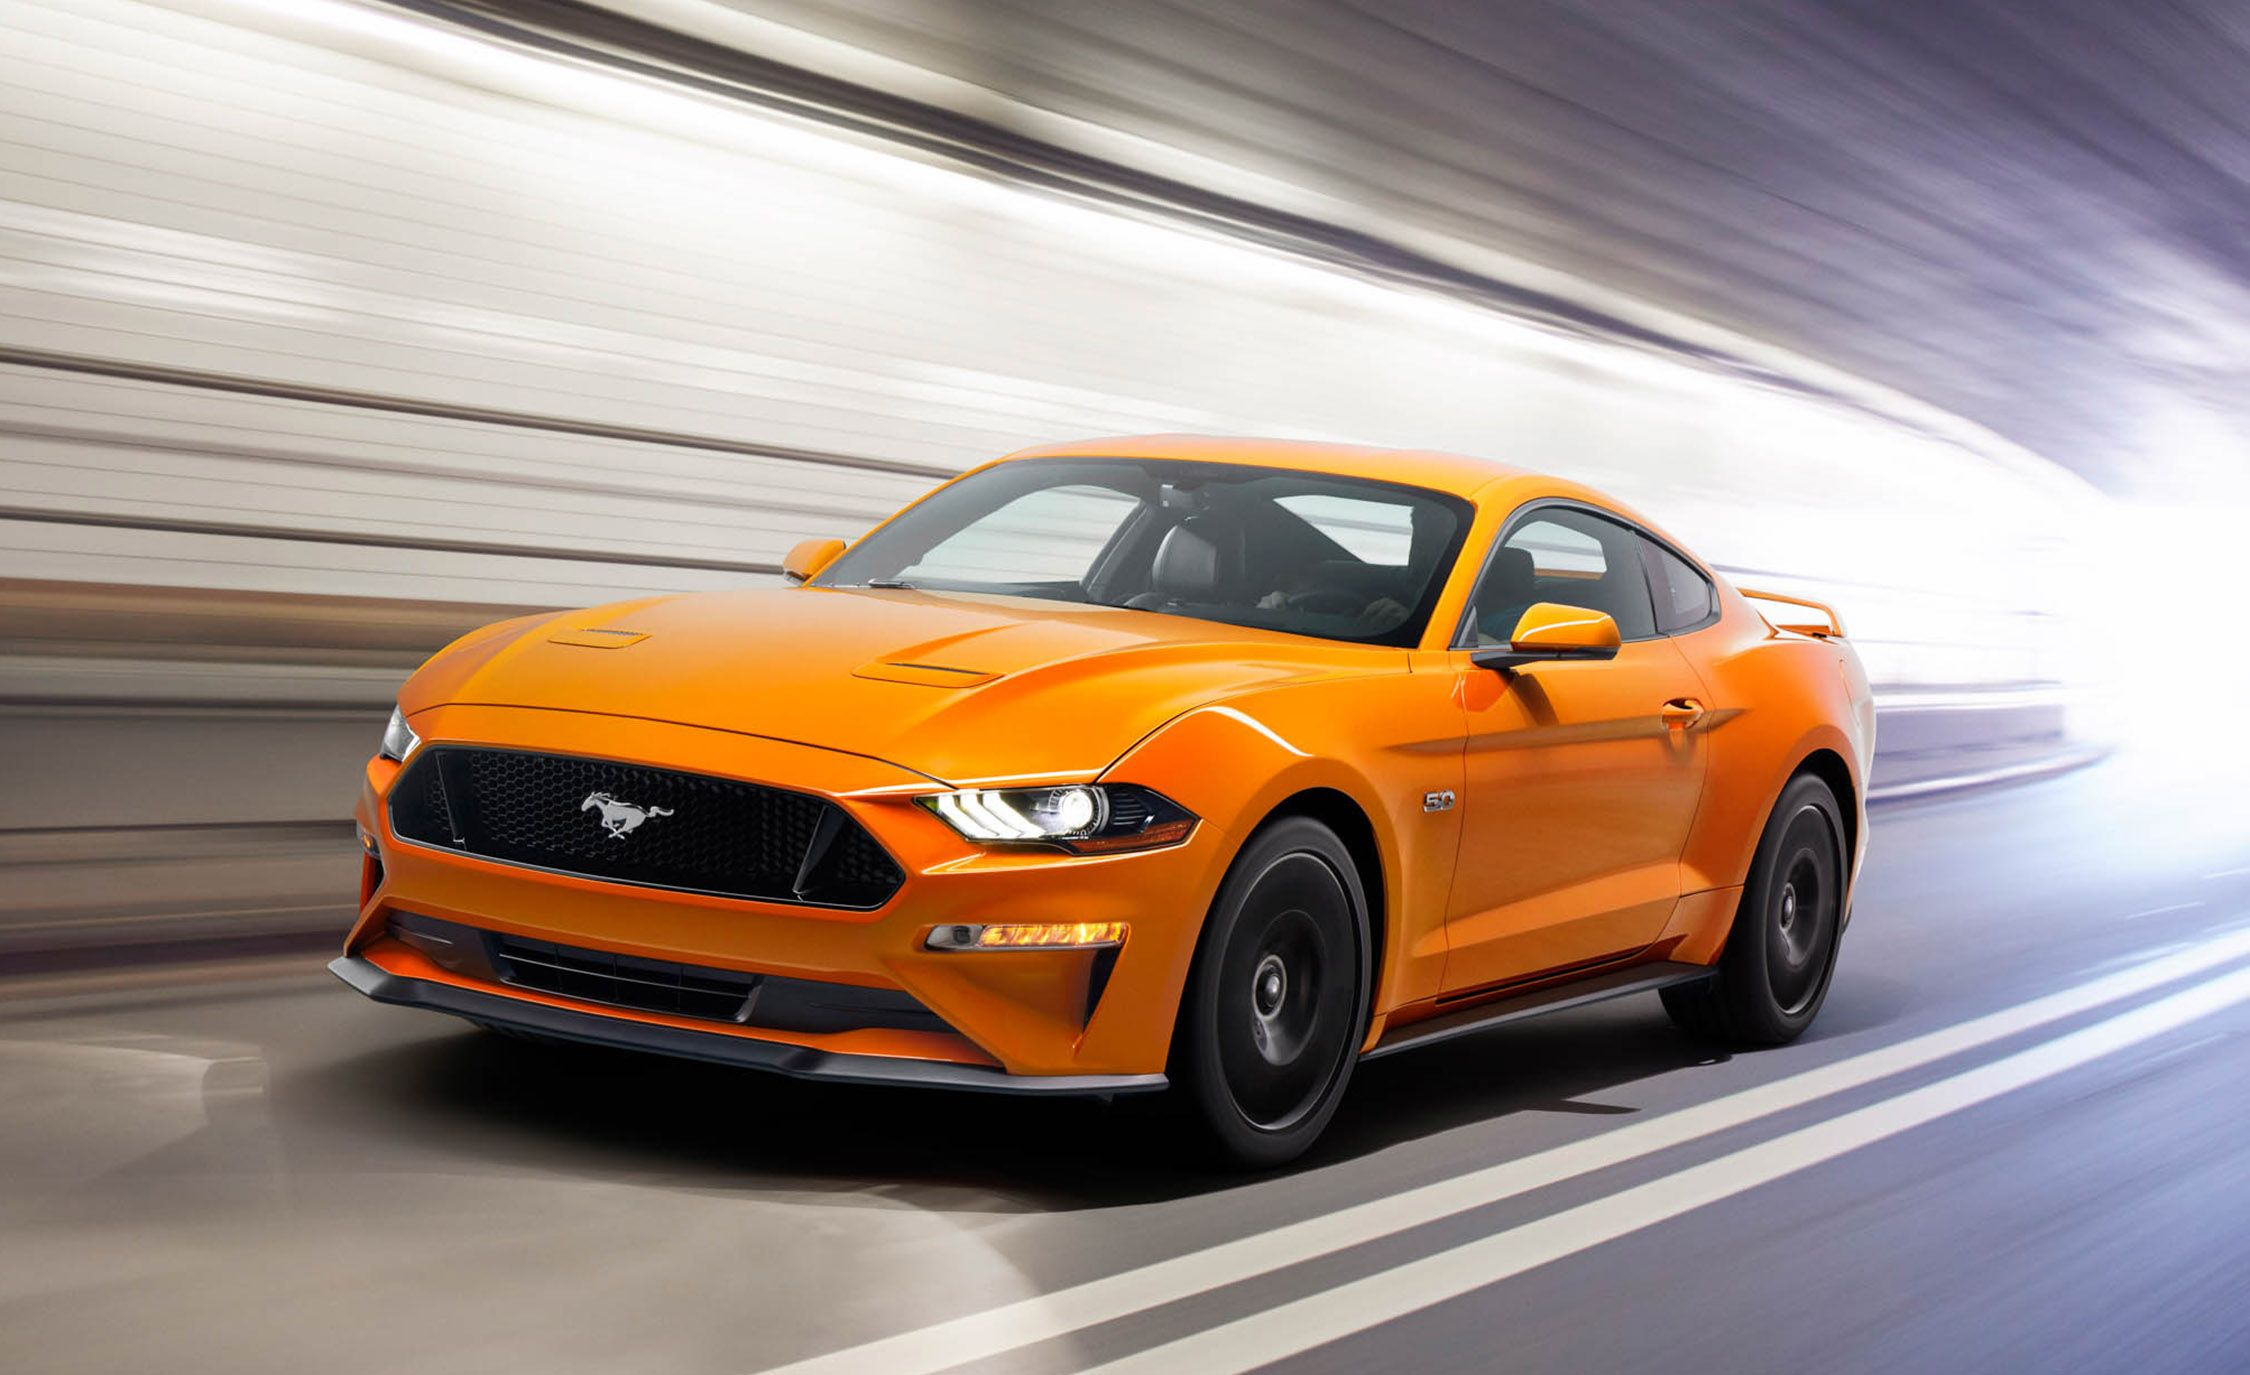 2018 Ford Mustang Drops V-6 Gains New Tech & 2018 Ford Mustang Photos and Info u2013 News u2013 Car and Driver markmcfarlin.com